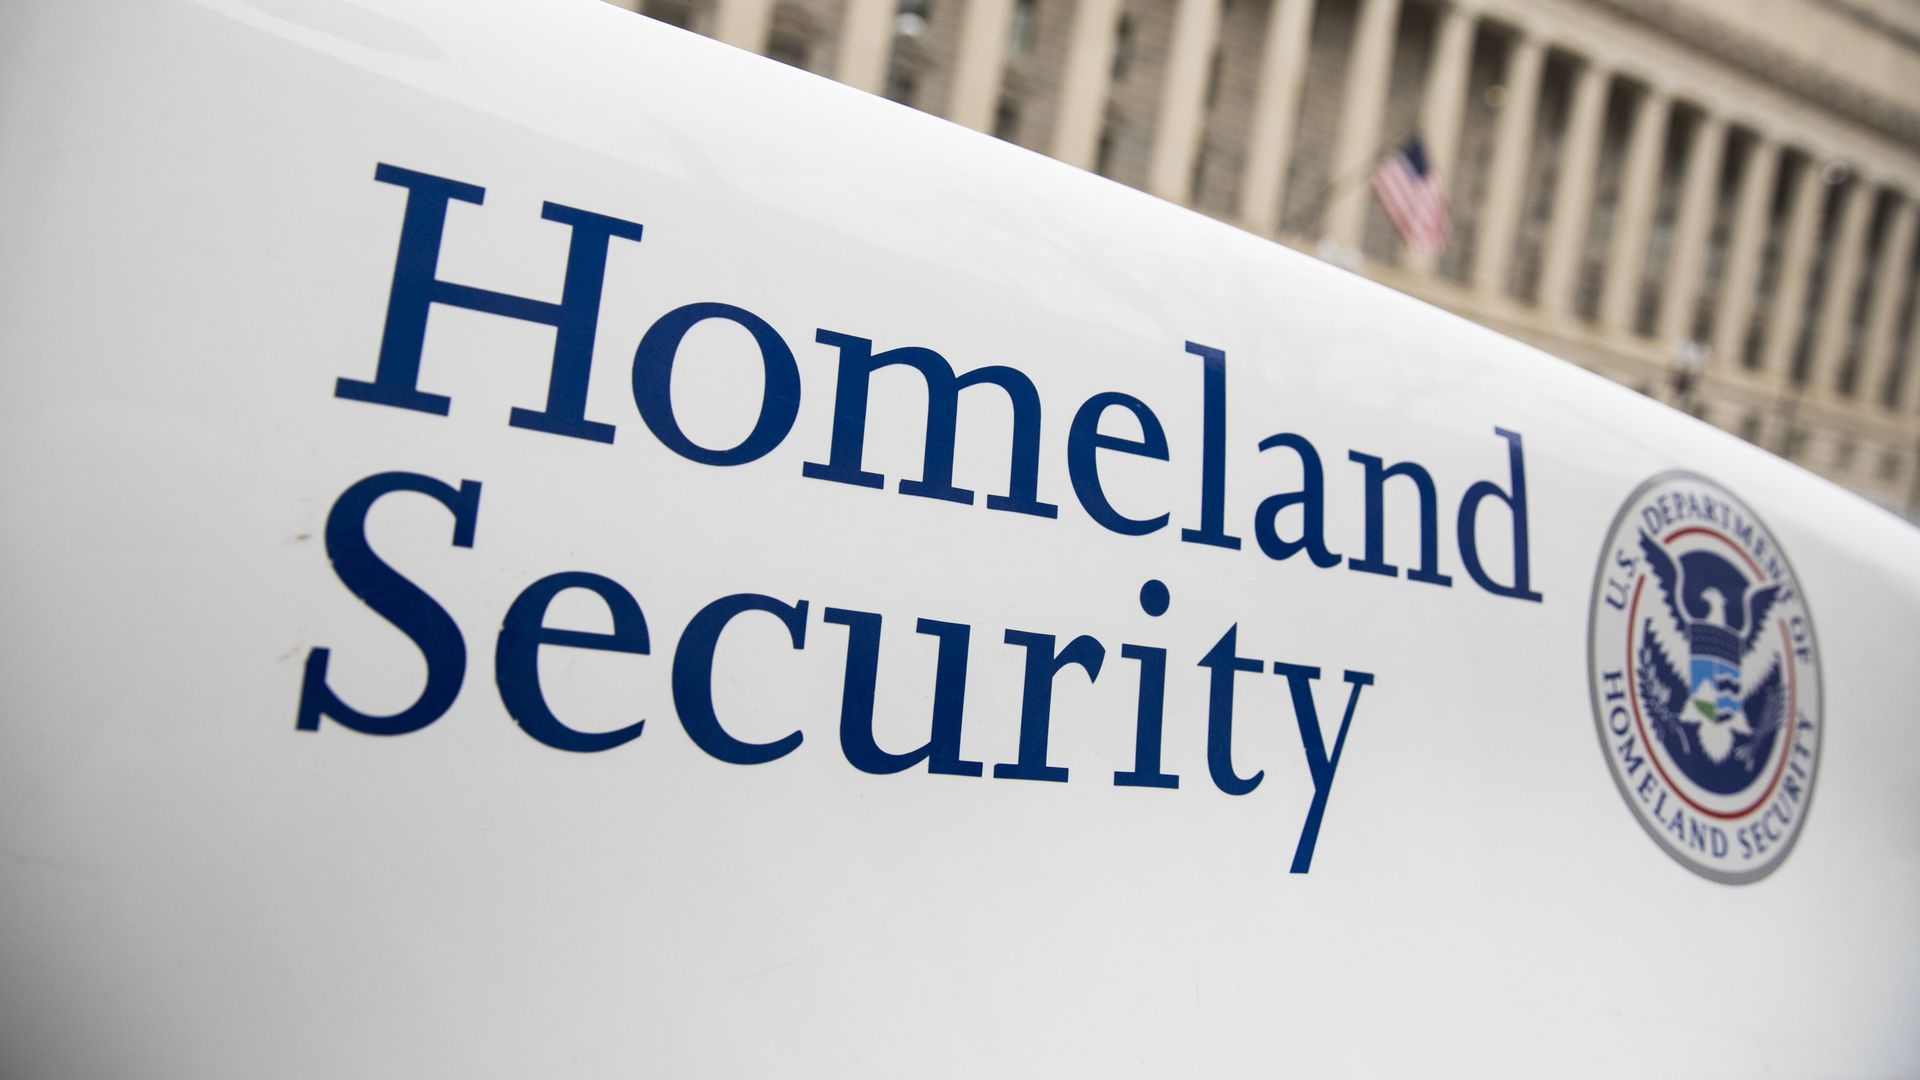 Homeland security department logo.